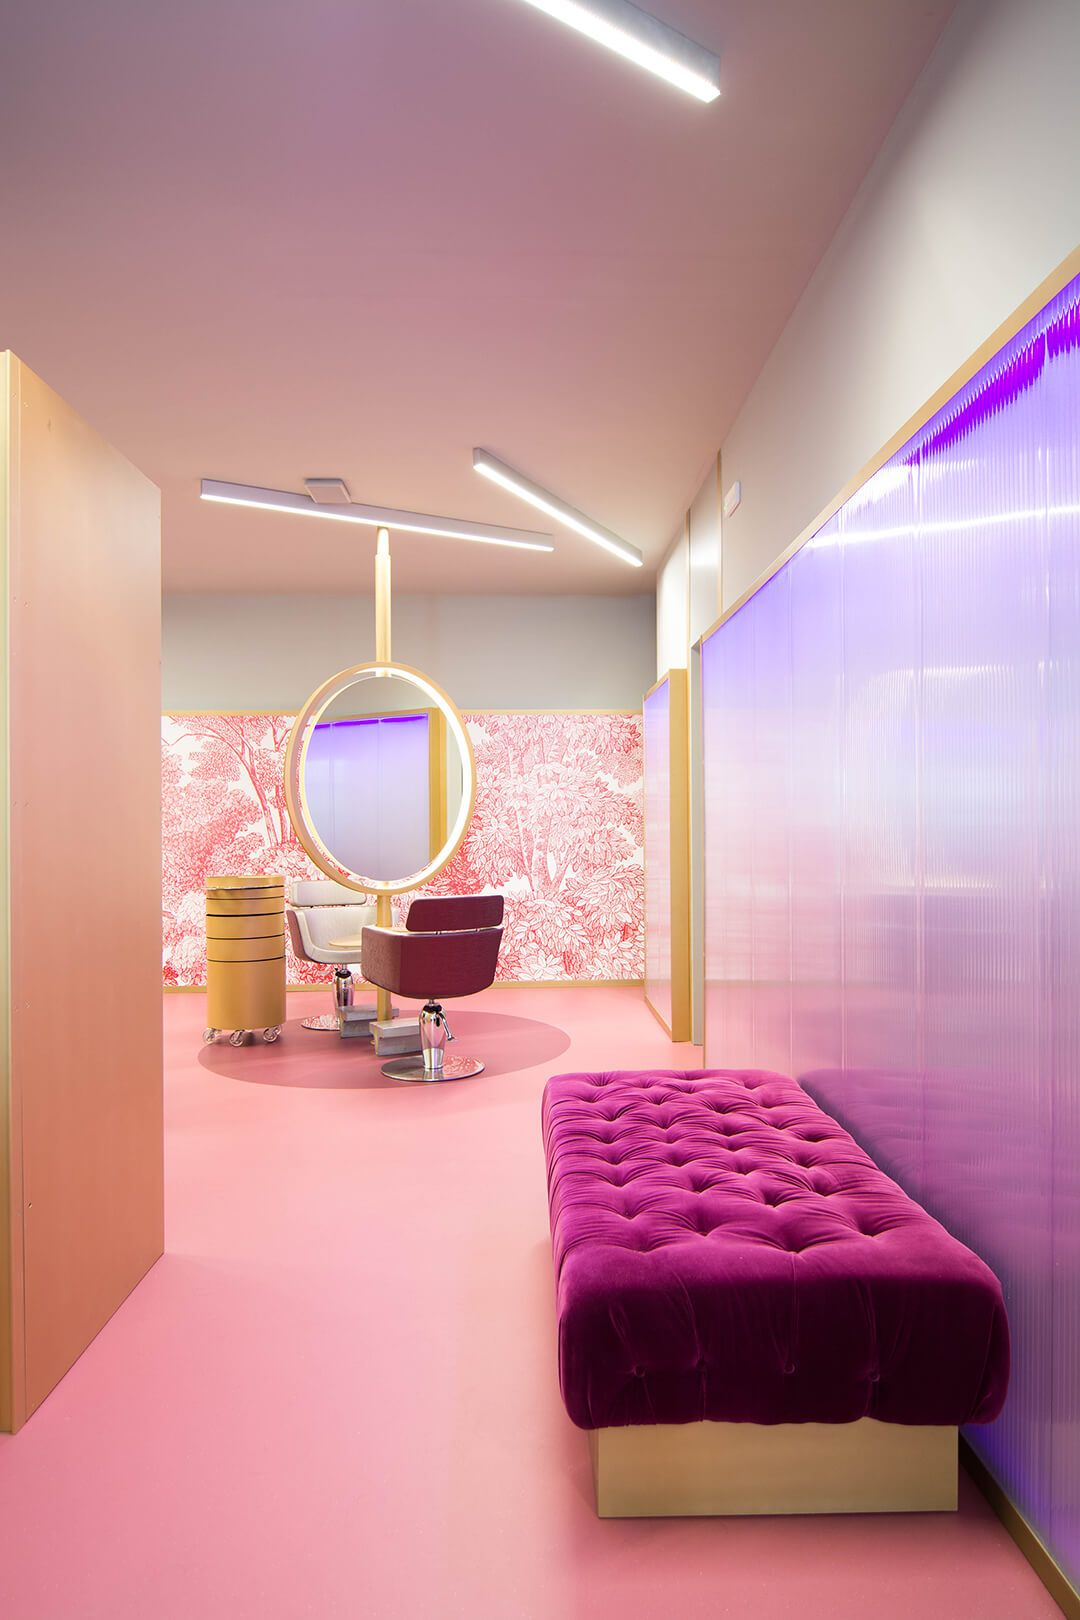 The hair salon 2.0 is designed for an experience Beauty